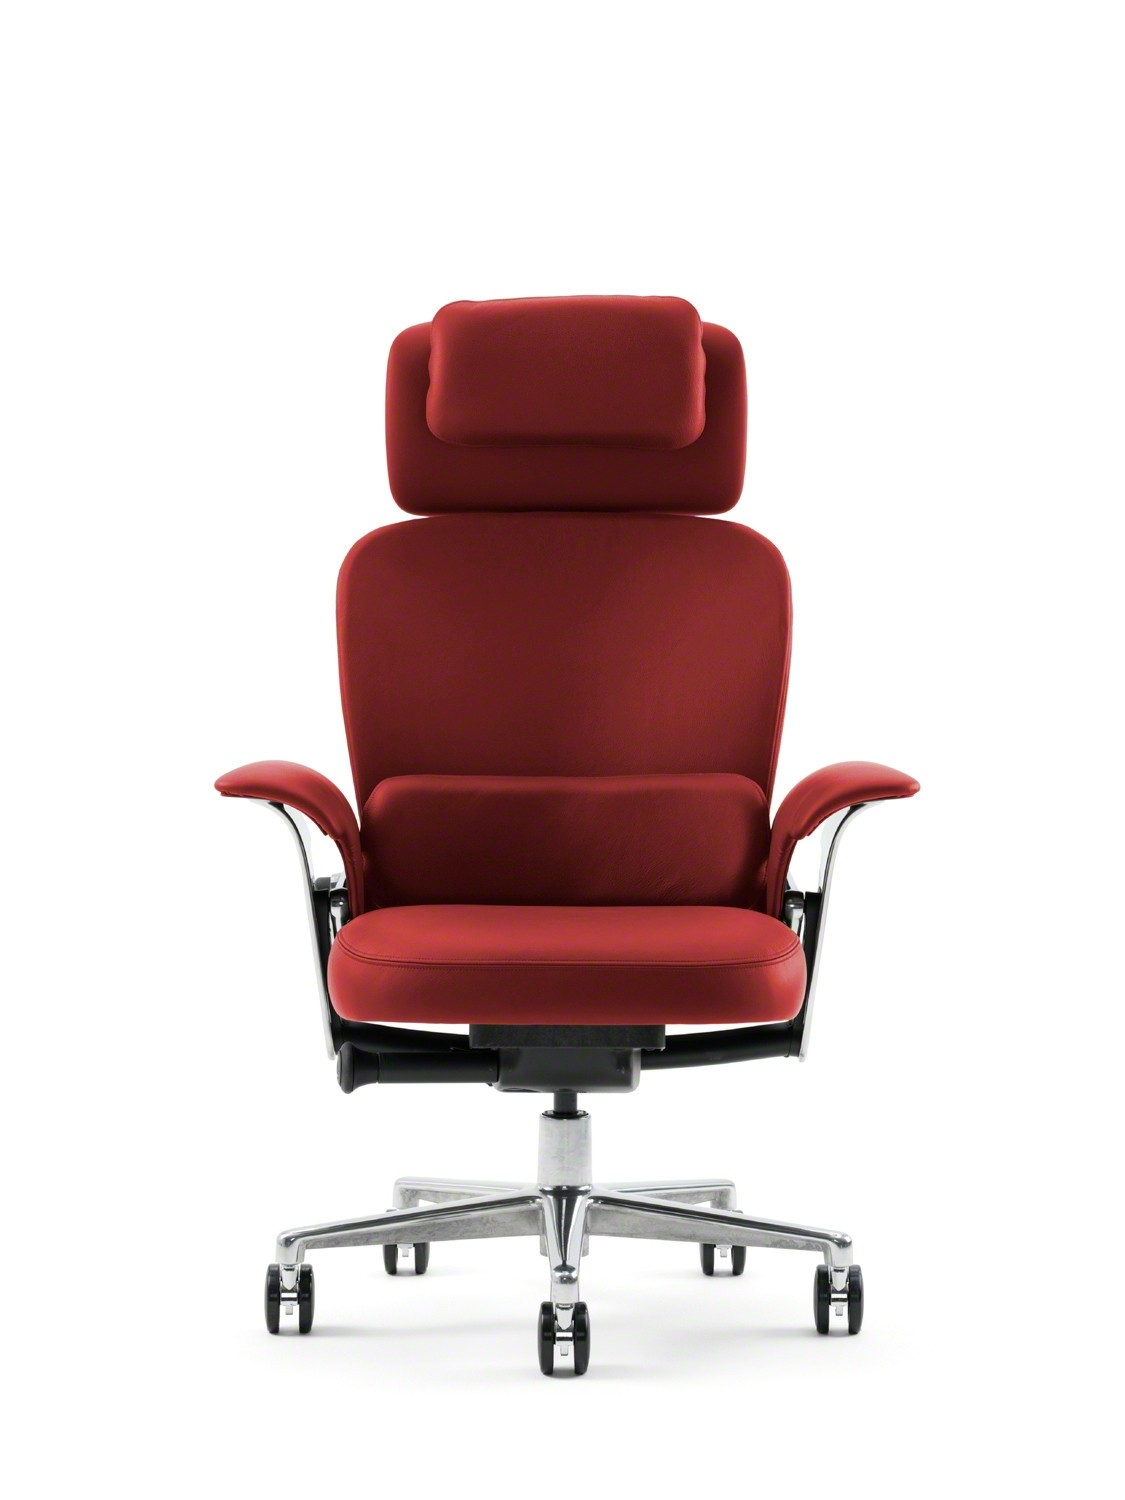 Steelcase Leap Worklounge Chair